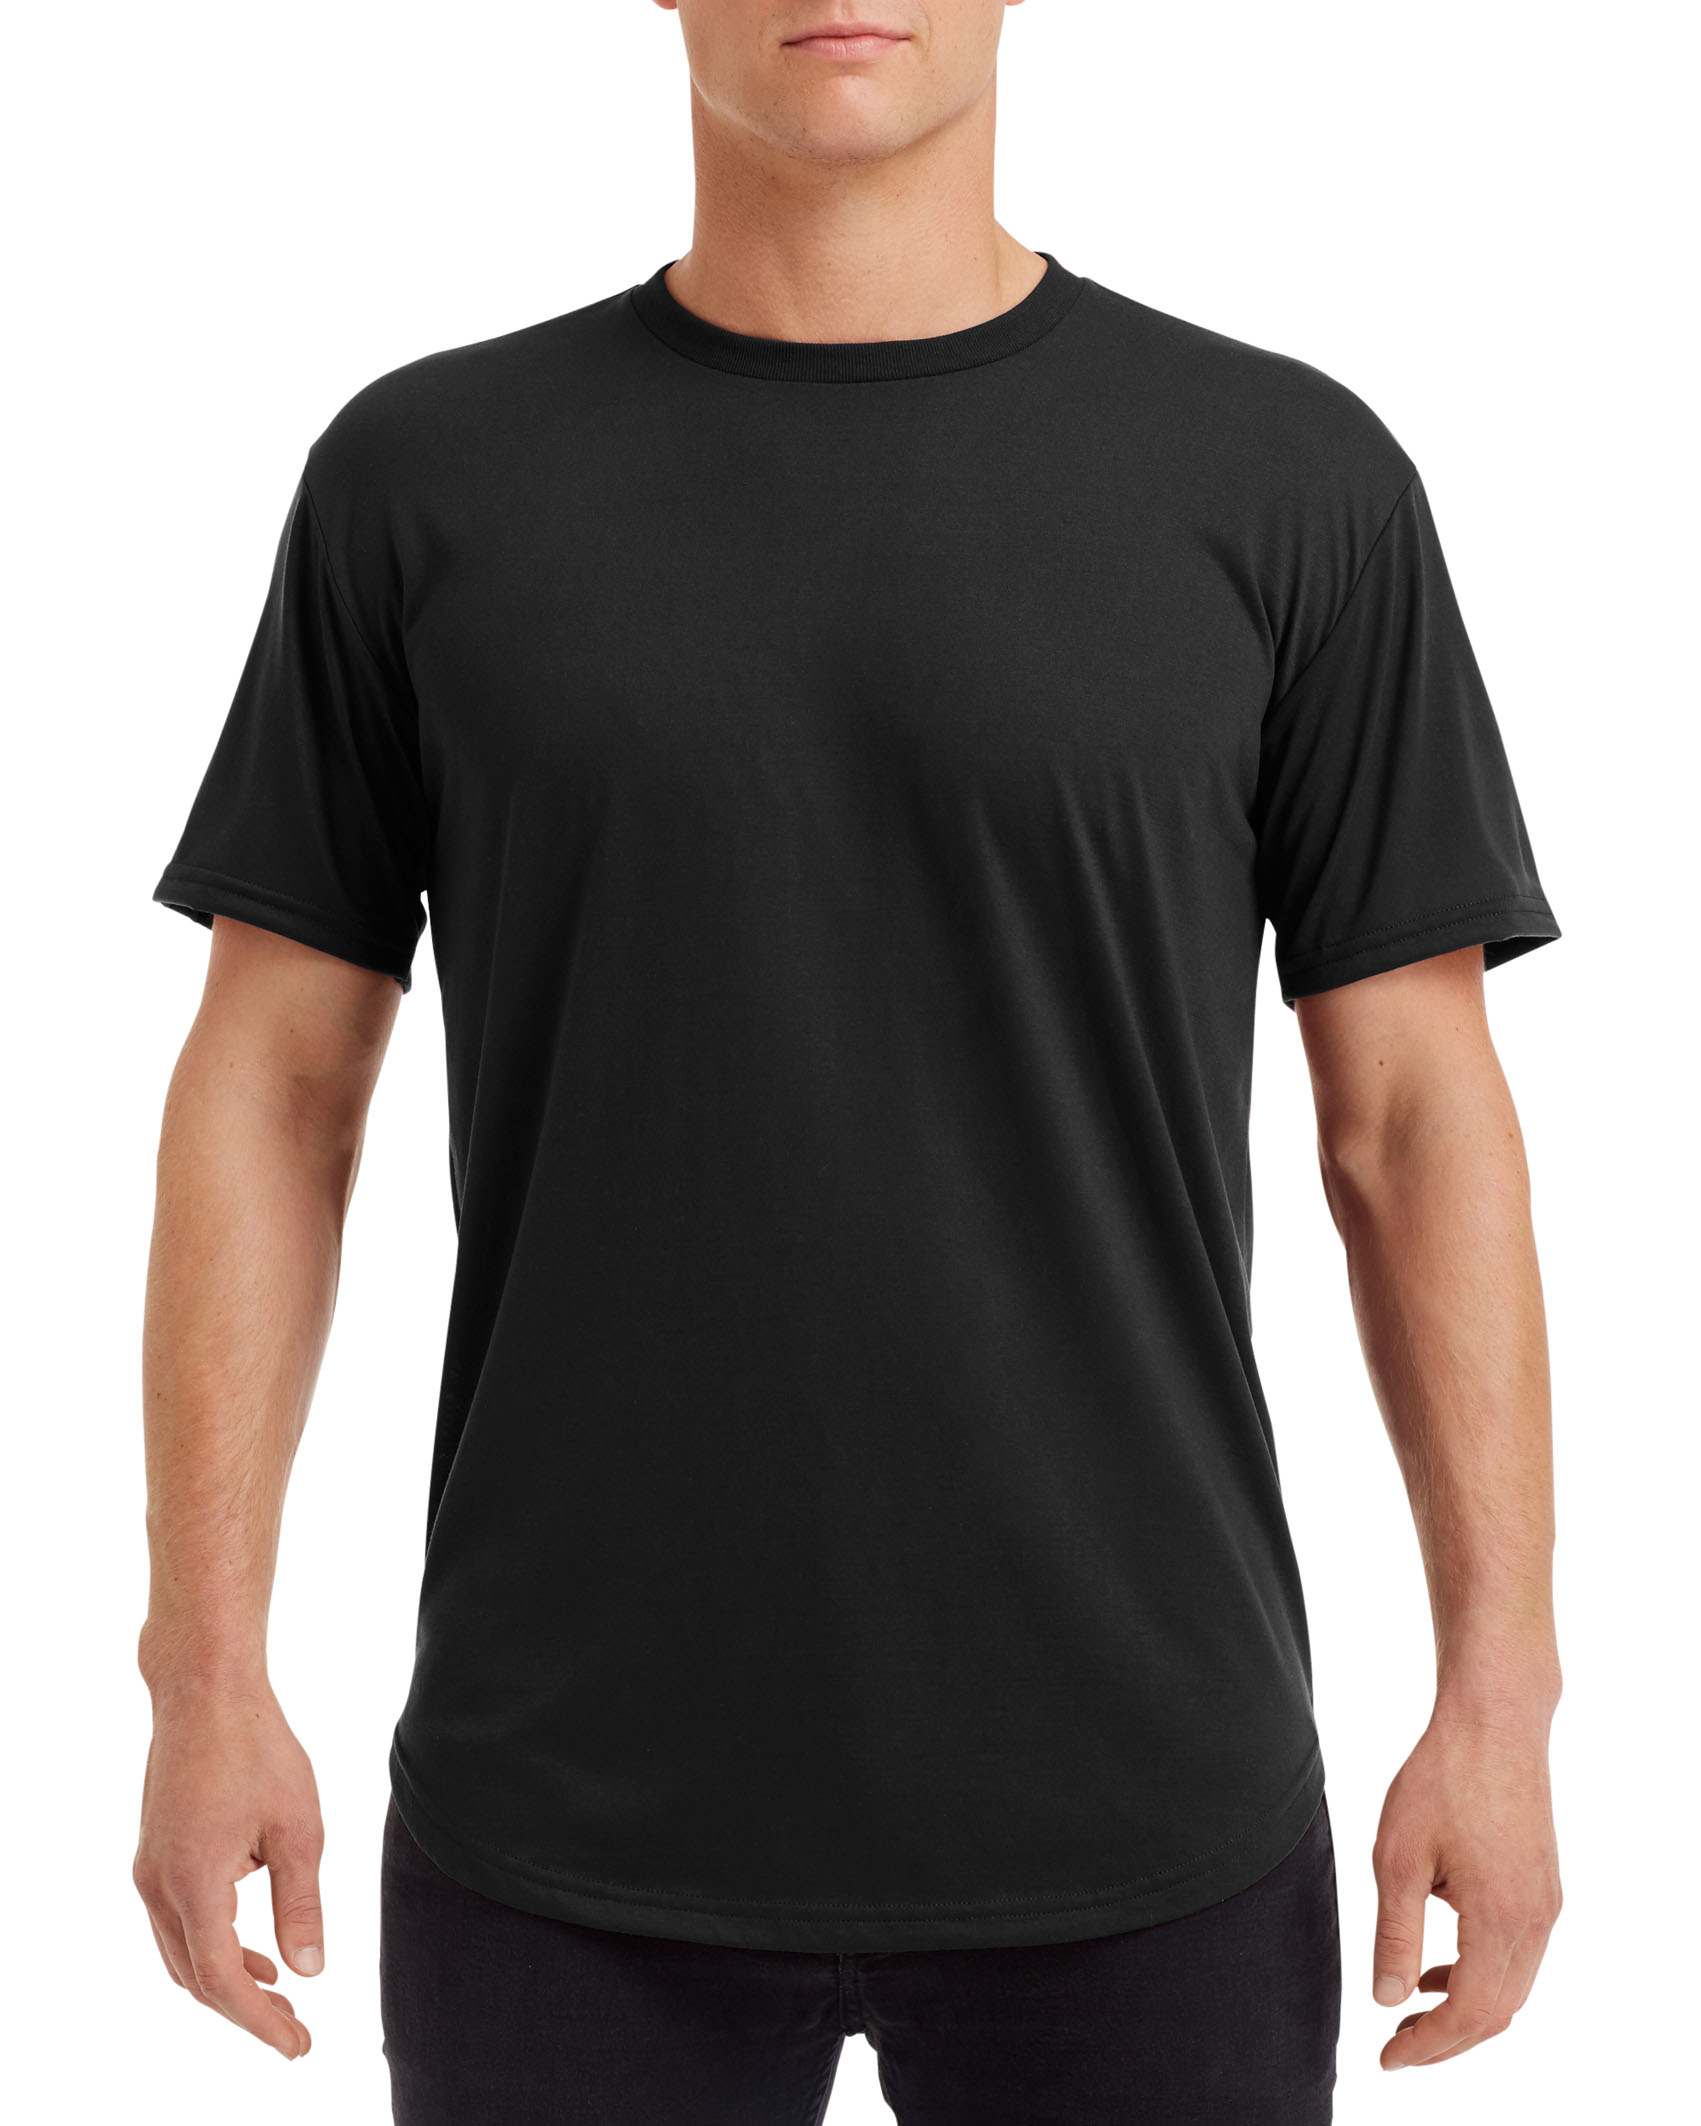 Anvil T-shirt Adult Curve Tee